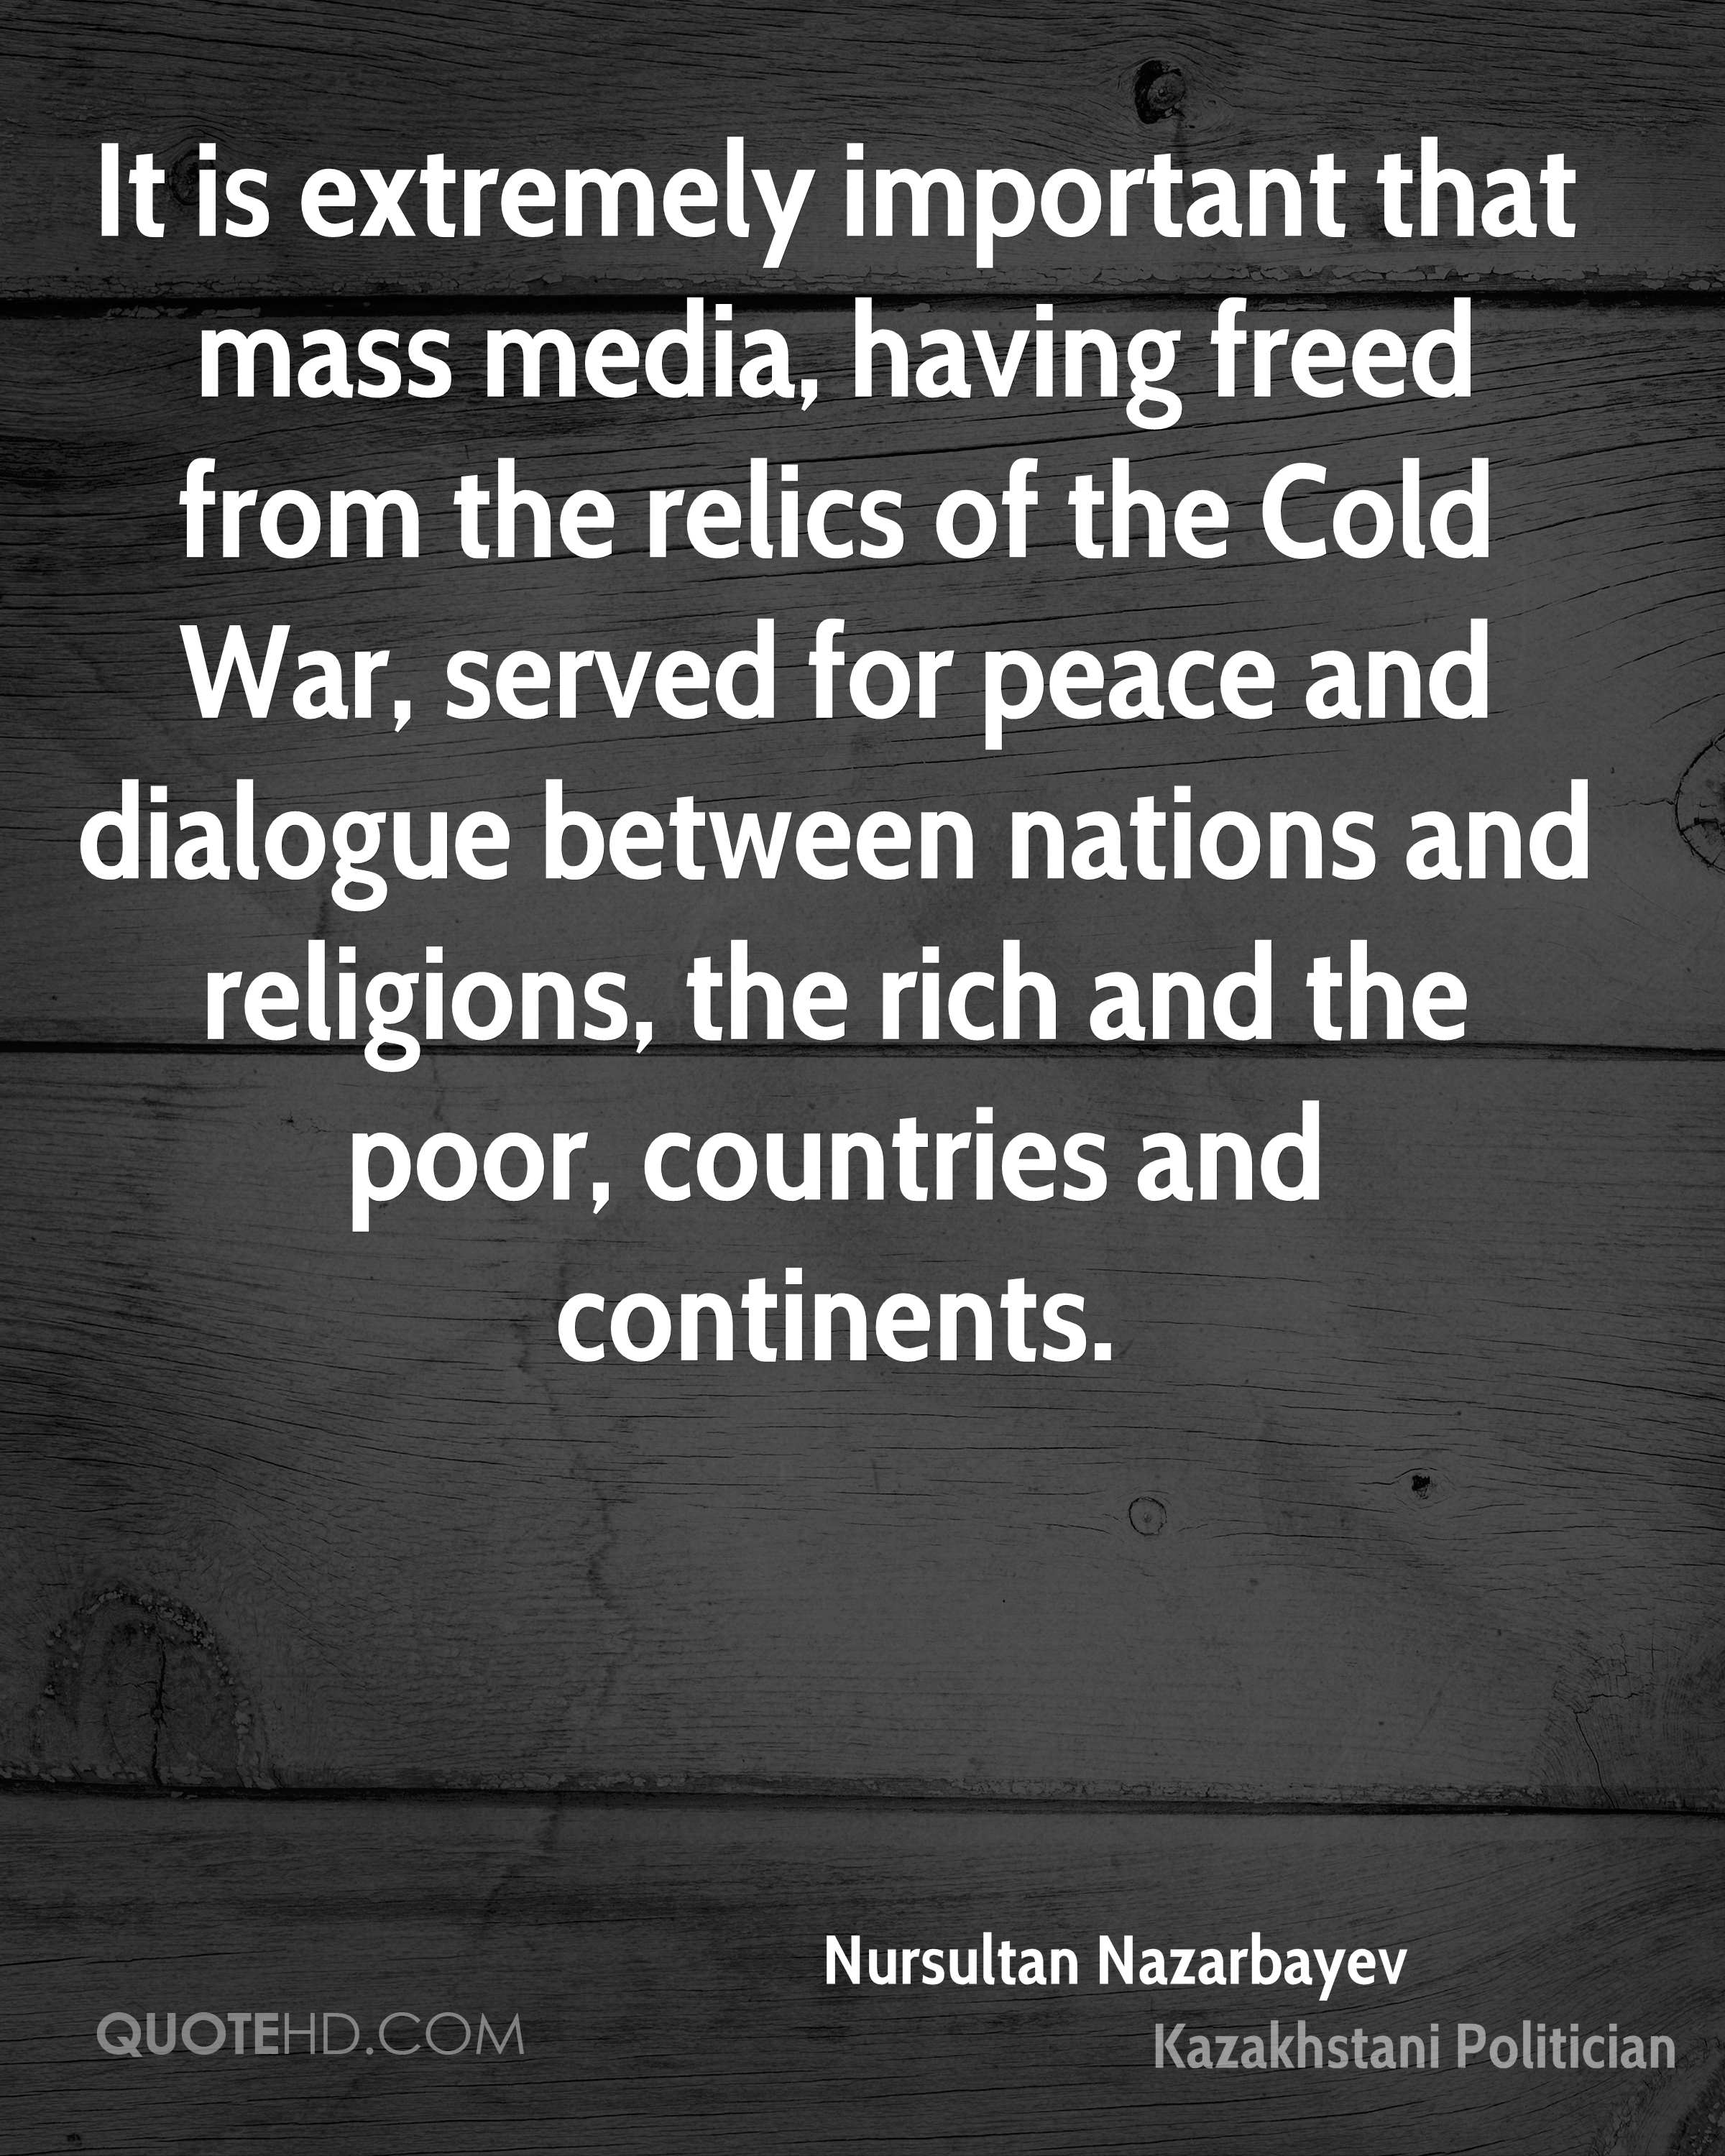 It is extremely important that mass media, having freed from the relics of the Cold War, served for peace and dialogue between nations and religions, the rich and the poor, countries and continents.